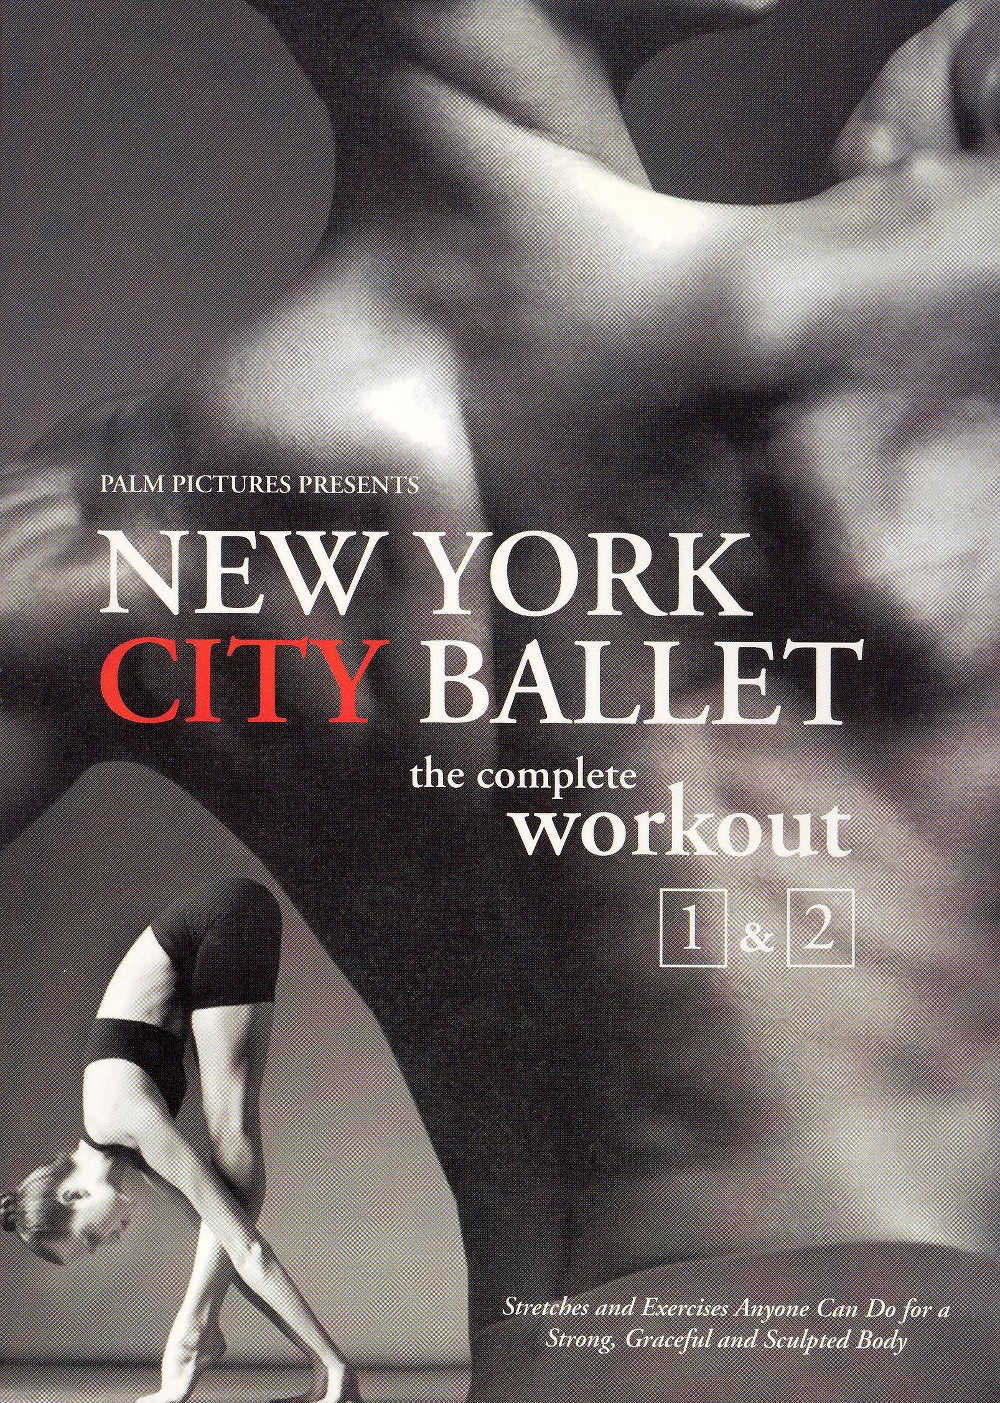 New york city ballet:Complete workout (Dvd)